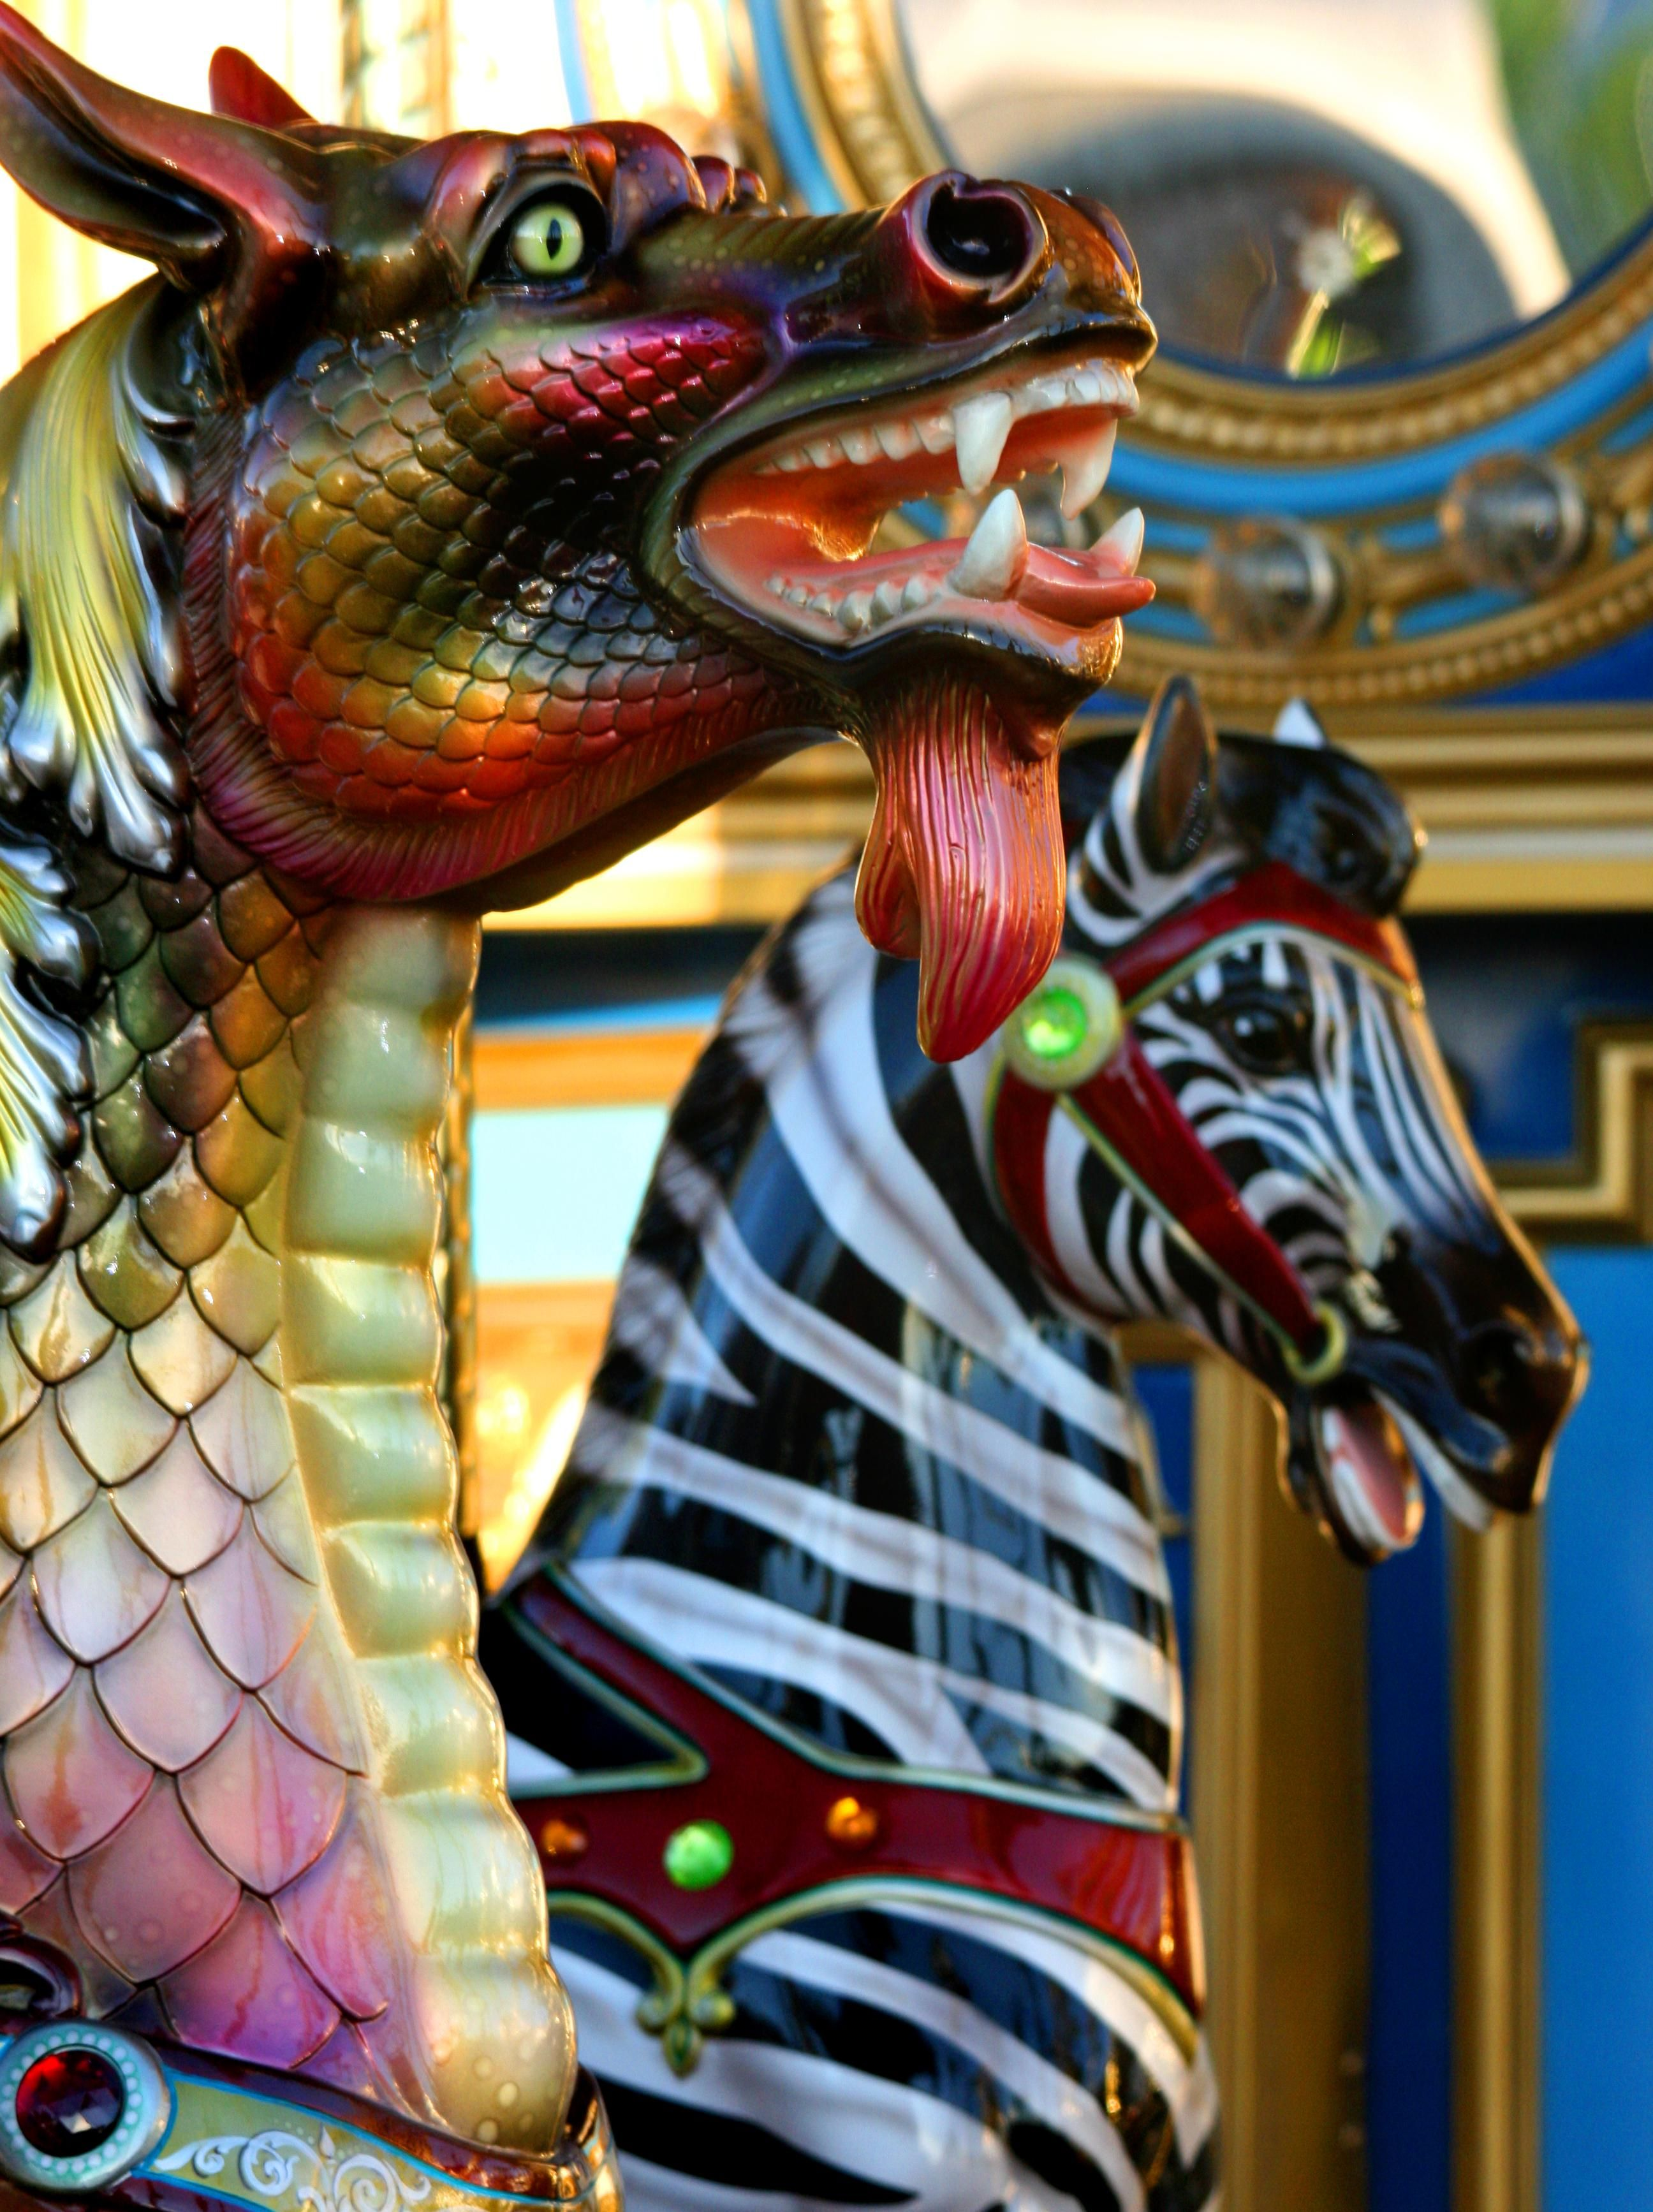 Unusual Combination On This Carousel. Dragon Meets Zebra..Saddle Up!